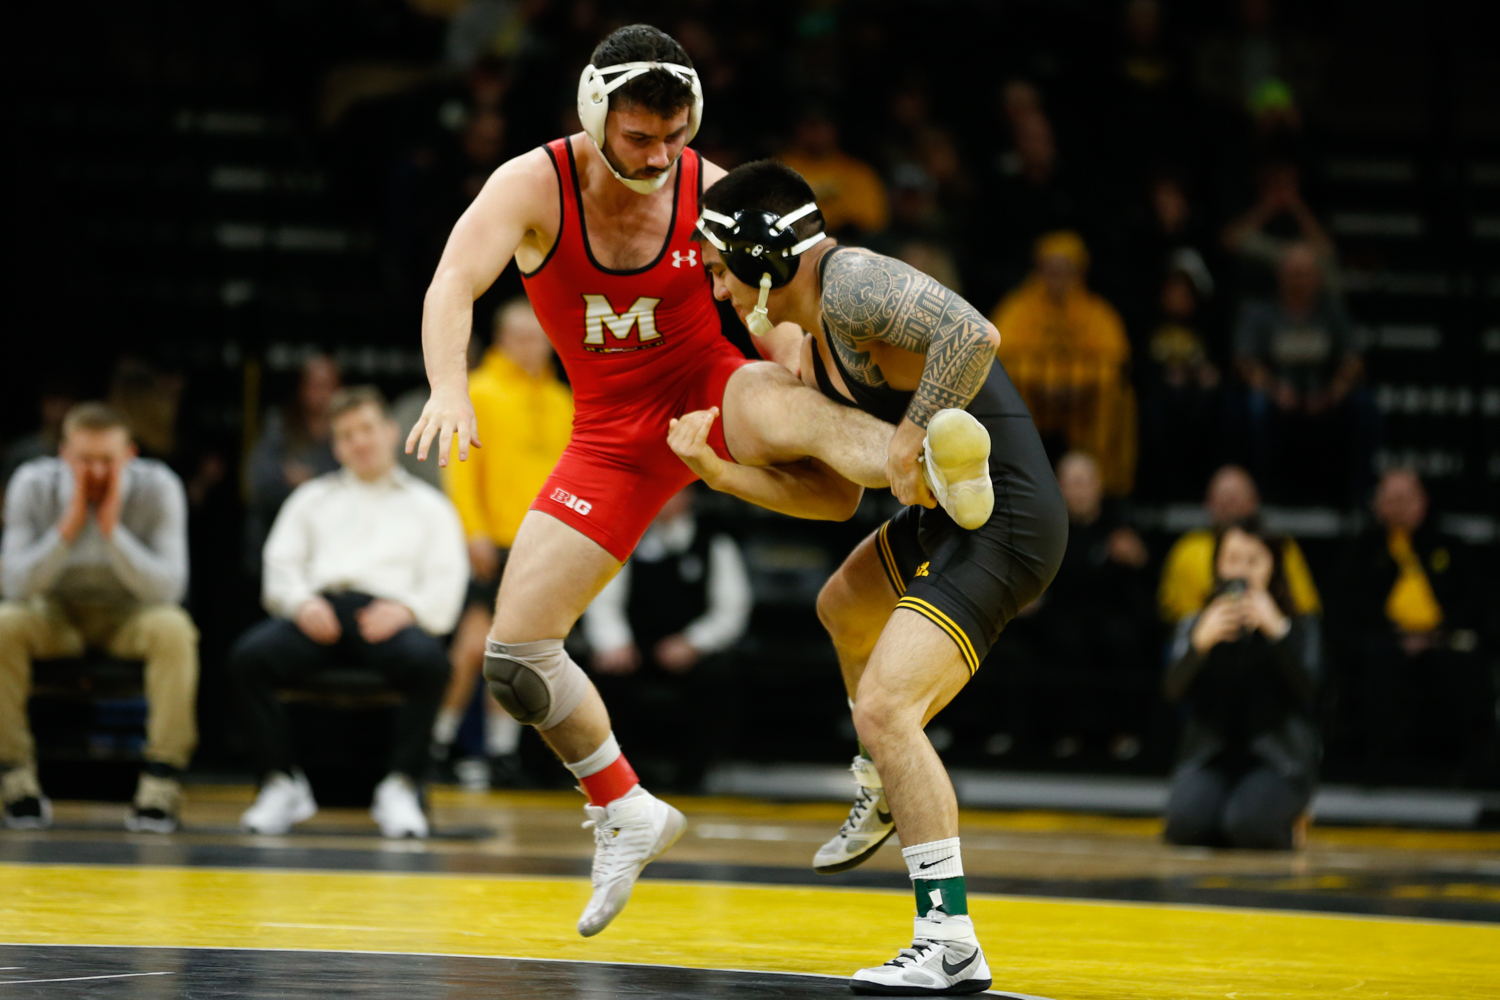 Iowa wrestler No. 12 Pat Lugo grapples with Maryland Wrestler Pete Tedesco in the 149-pound weight class match during a wrestling dual meet at Carver-Hawkeye Arena on Friday, Feb. 8, 2019. Lugo won via tech fall, 23-8, and the Hawkeyes defeated the Terrapins, 48-0.